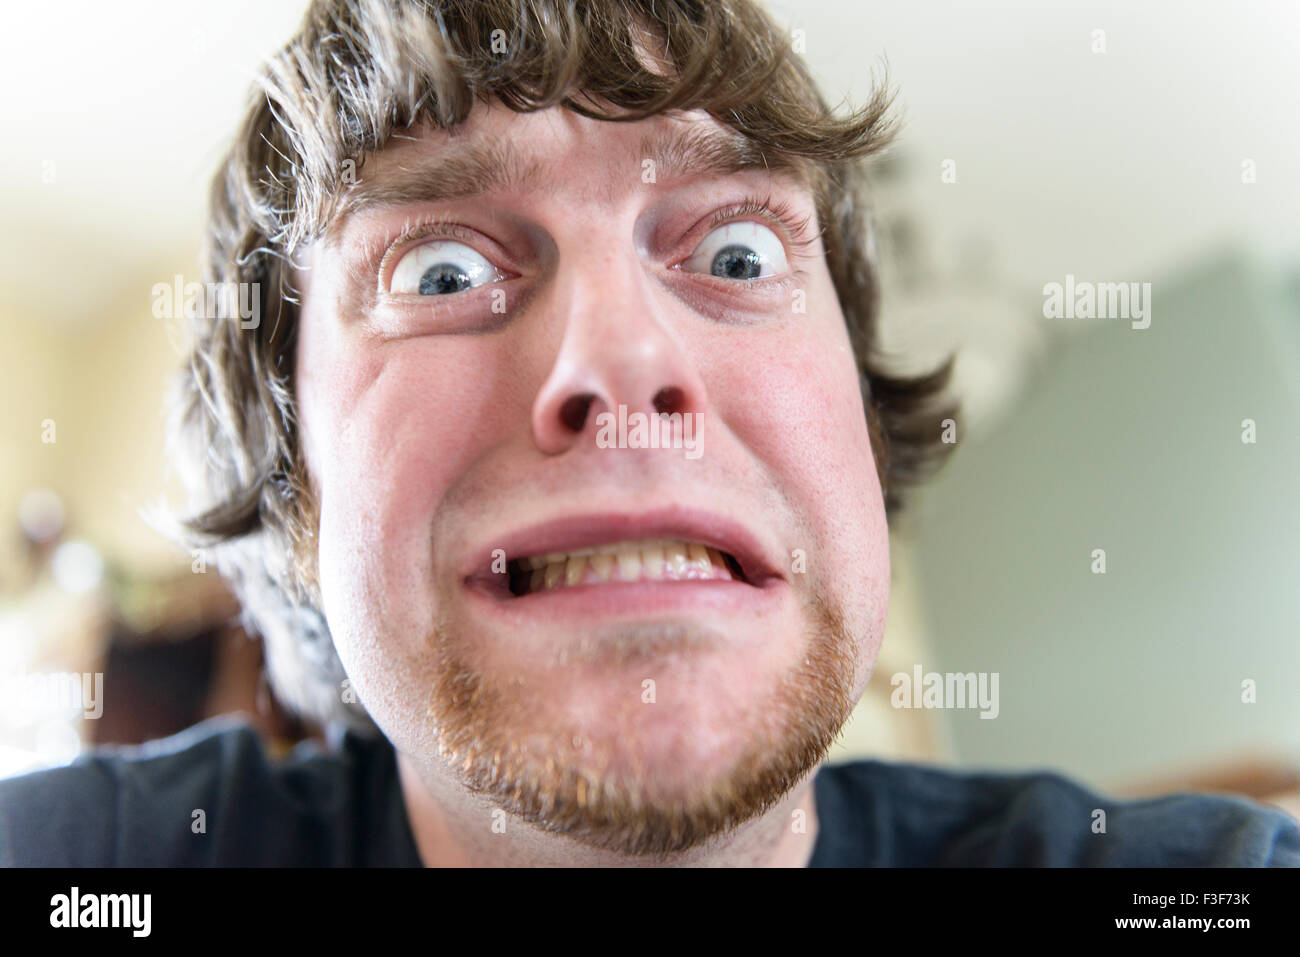 A young Caucasian man in his mid-20s makes a funny face with bulging eyes. Closeup. USA. - Stock Image